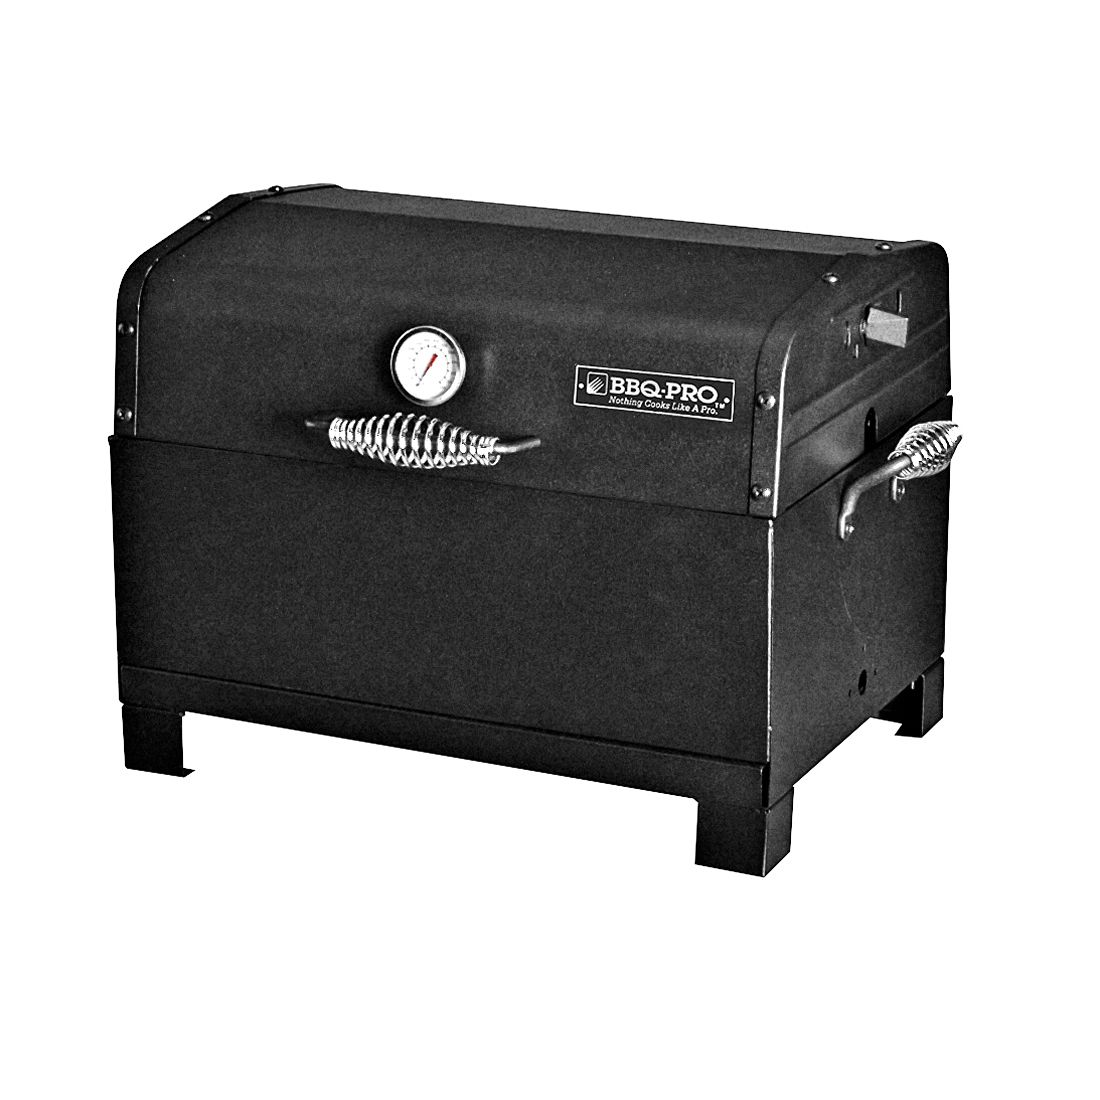 bbq pro 8401502 deluxe portable charcoal grill outdoor living grills outdoor cooking. Black Bedroom Furniture Sets. Home Design Ideas